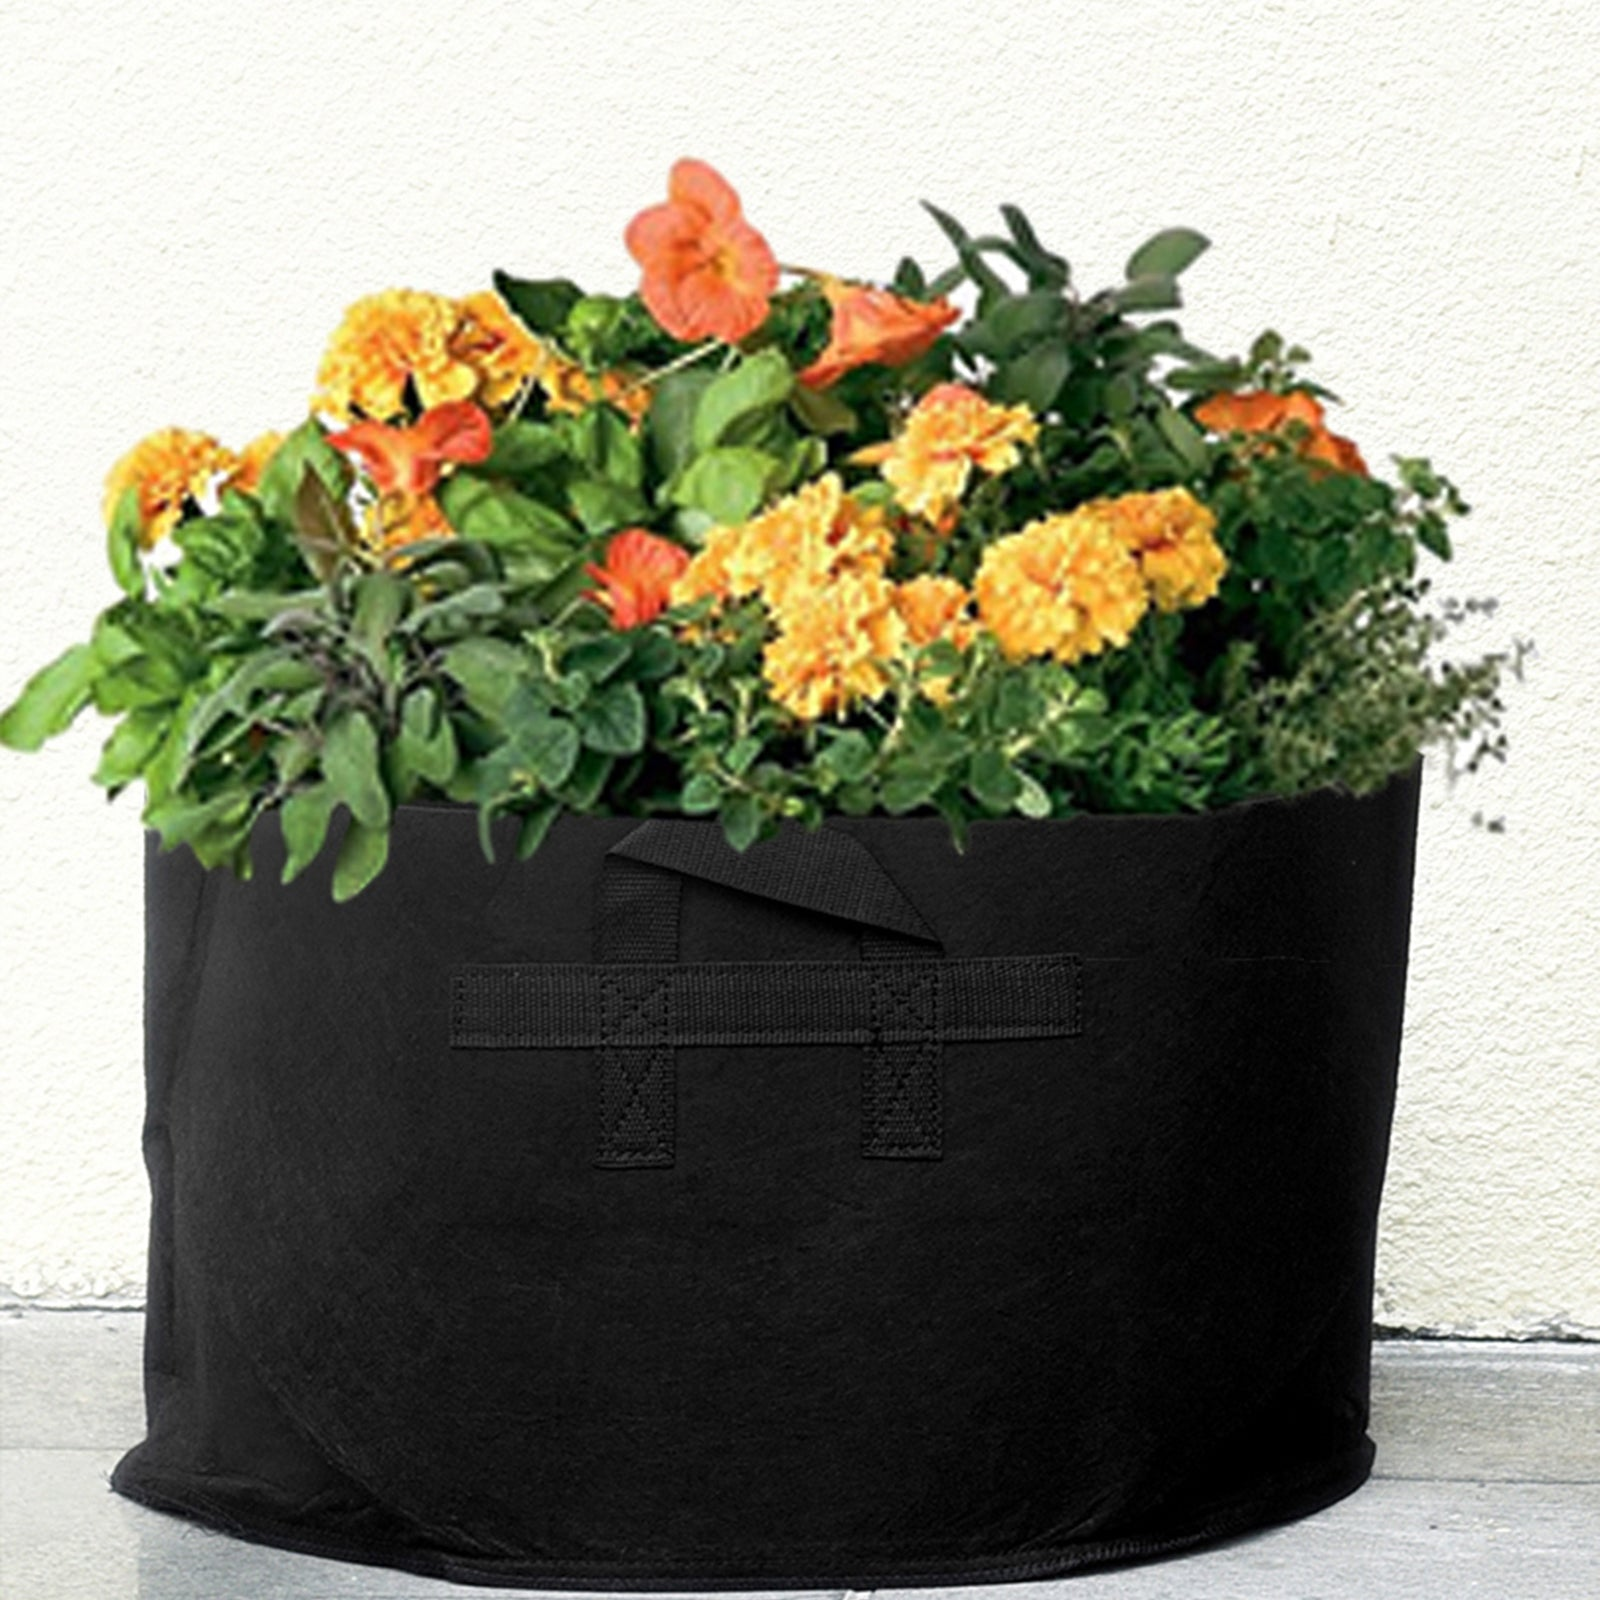 FiveSeasonStuff 7 Pack 15 Gallons Grow Bags - Black Breathable Fabric Pots for Healthier Plants Flowers – Heavy Duty Thick Container with Tear Resistant Handles - Aeration Planters for Smart Gardening